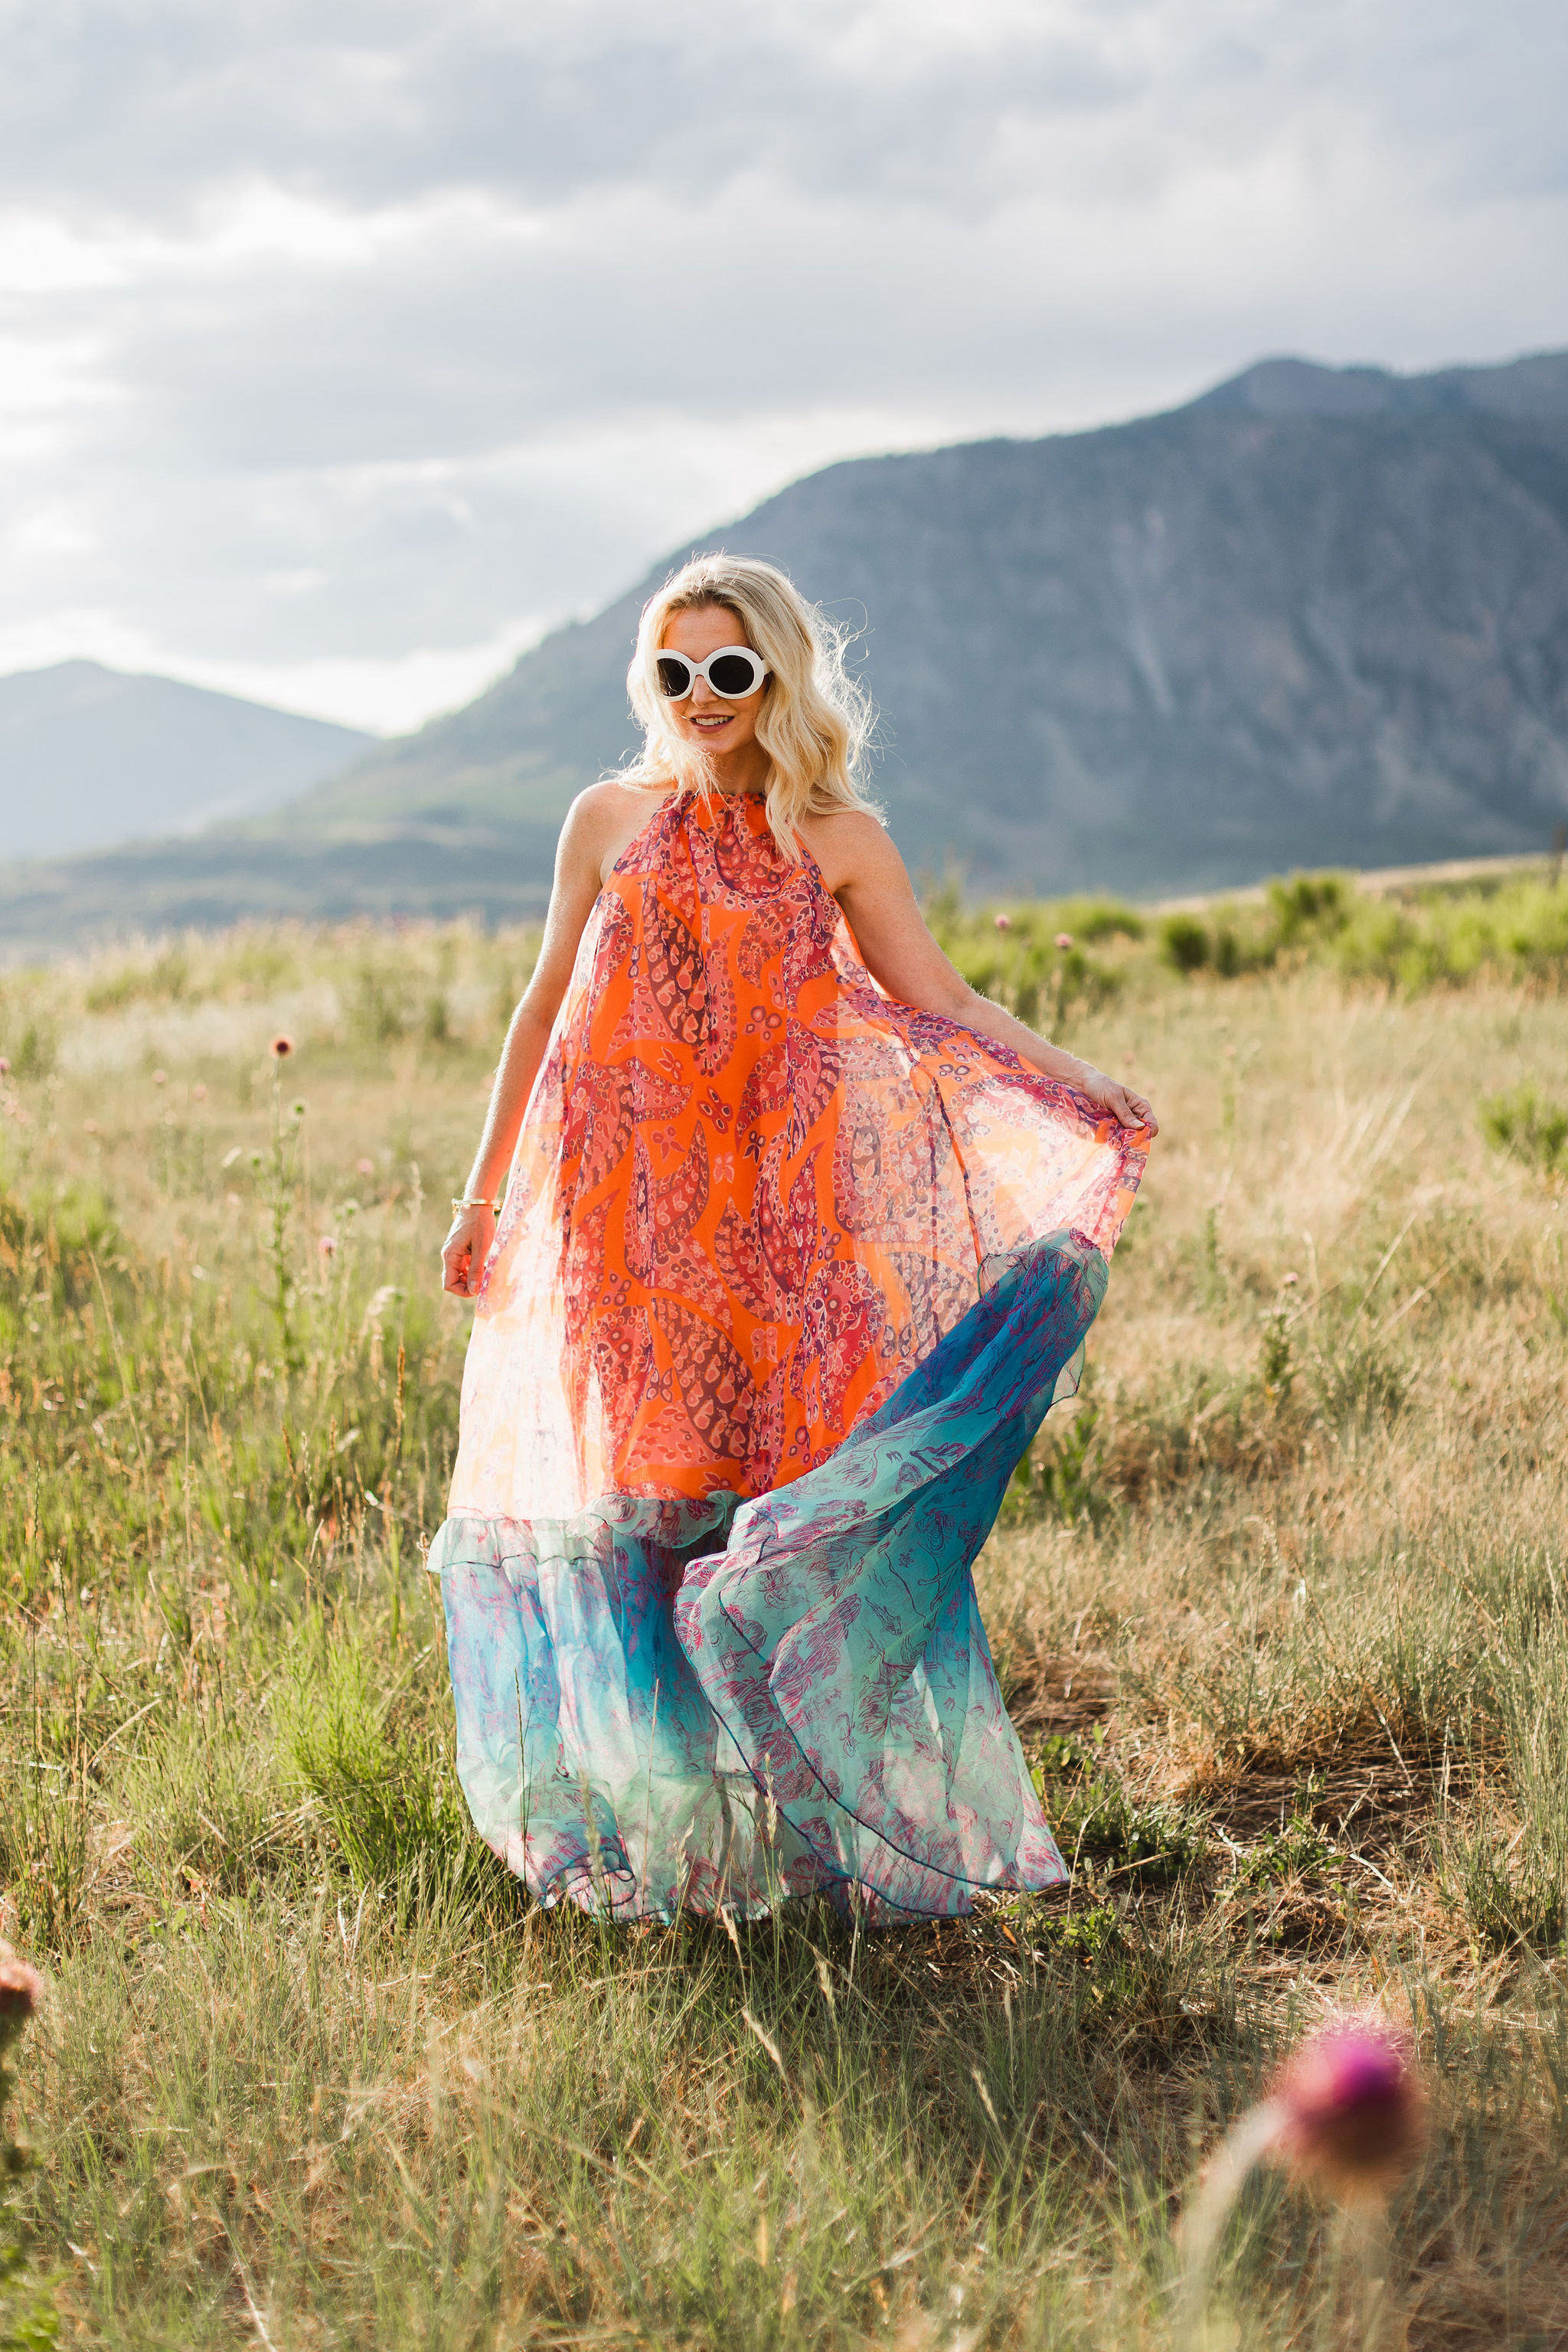 Ina dress by Staud in a tall grass field in the mountains of telluride featuring INA staud dress in orange and blue on fashion over 40 blogger Erin Busbee of Busbee Style